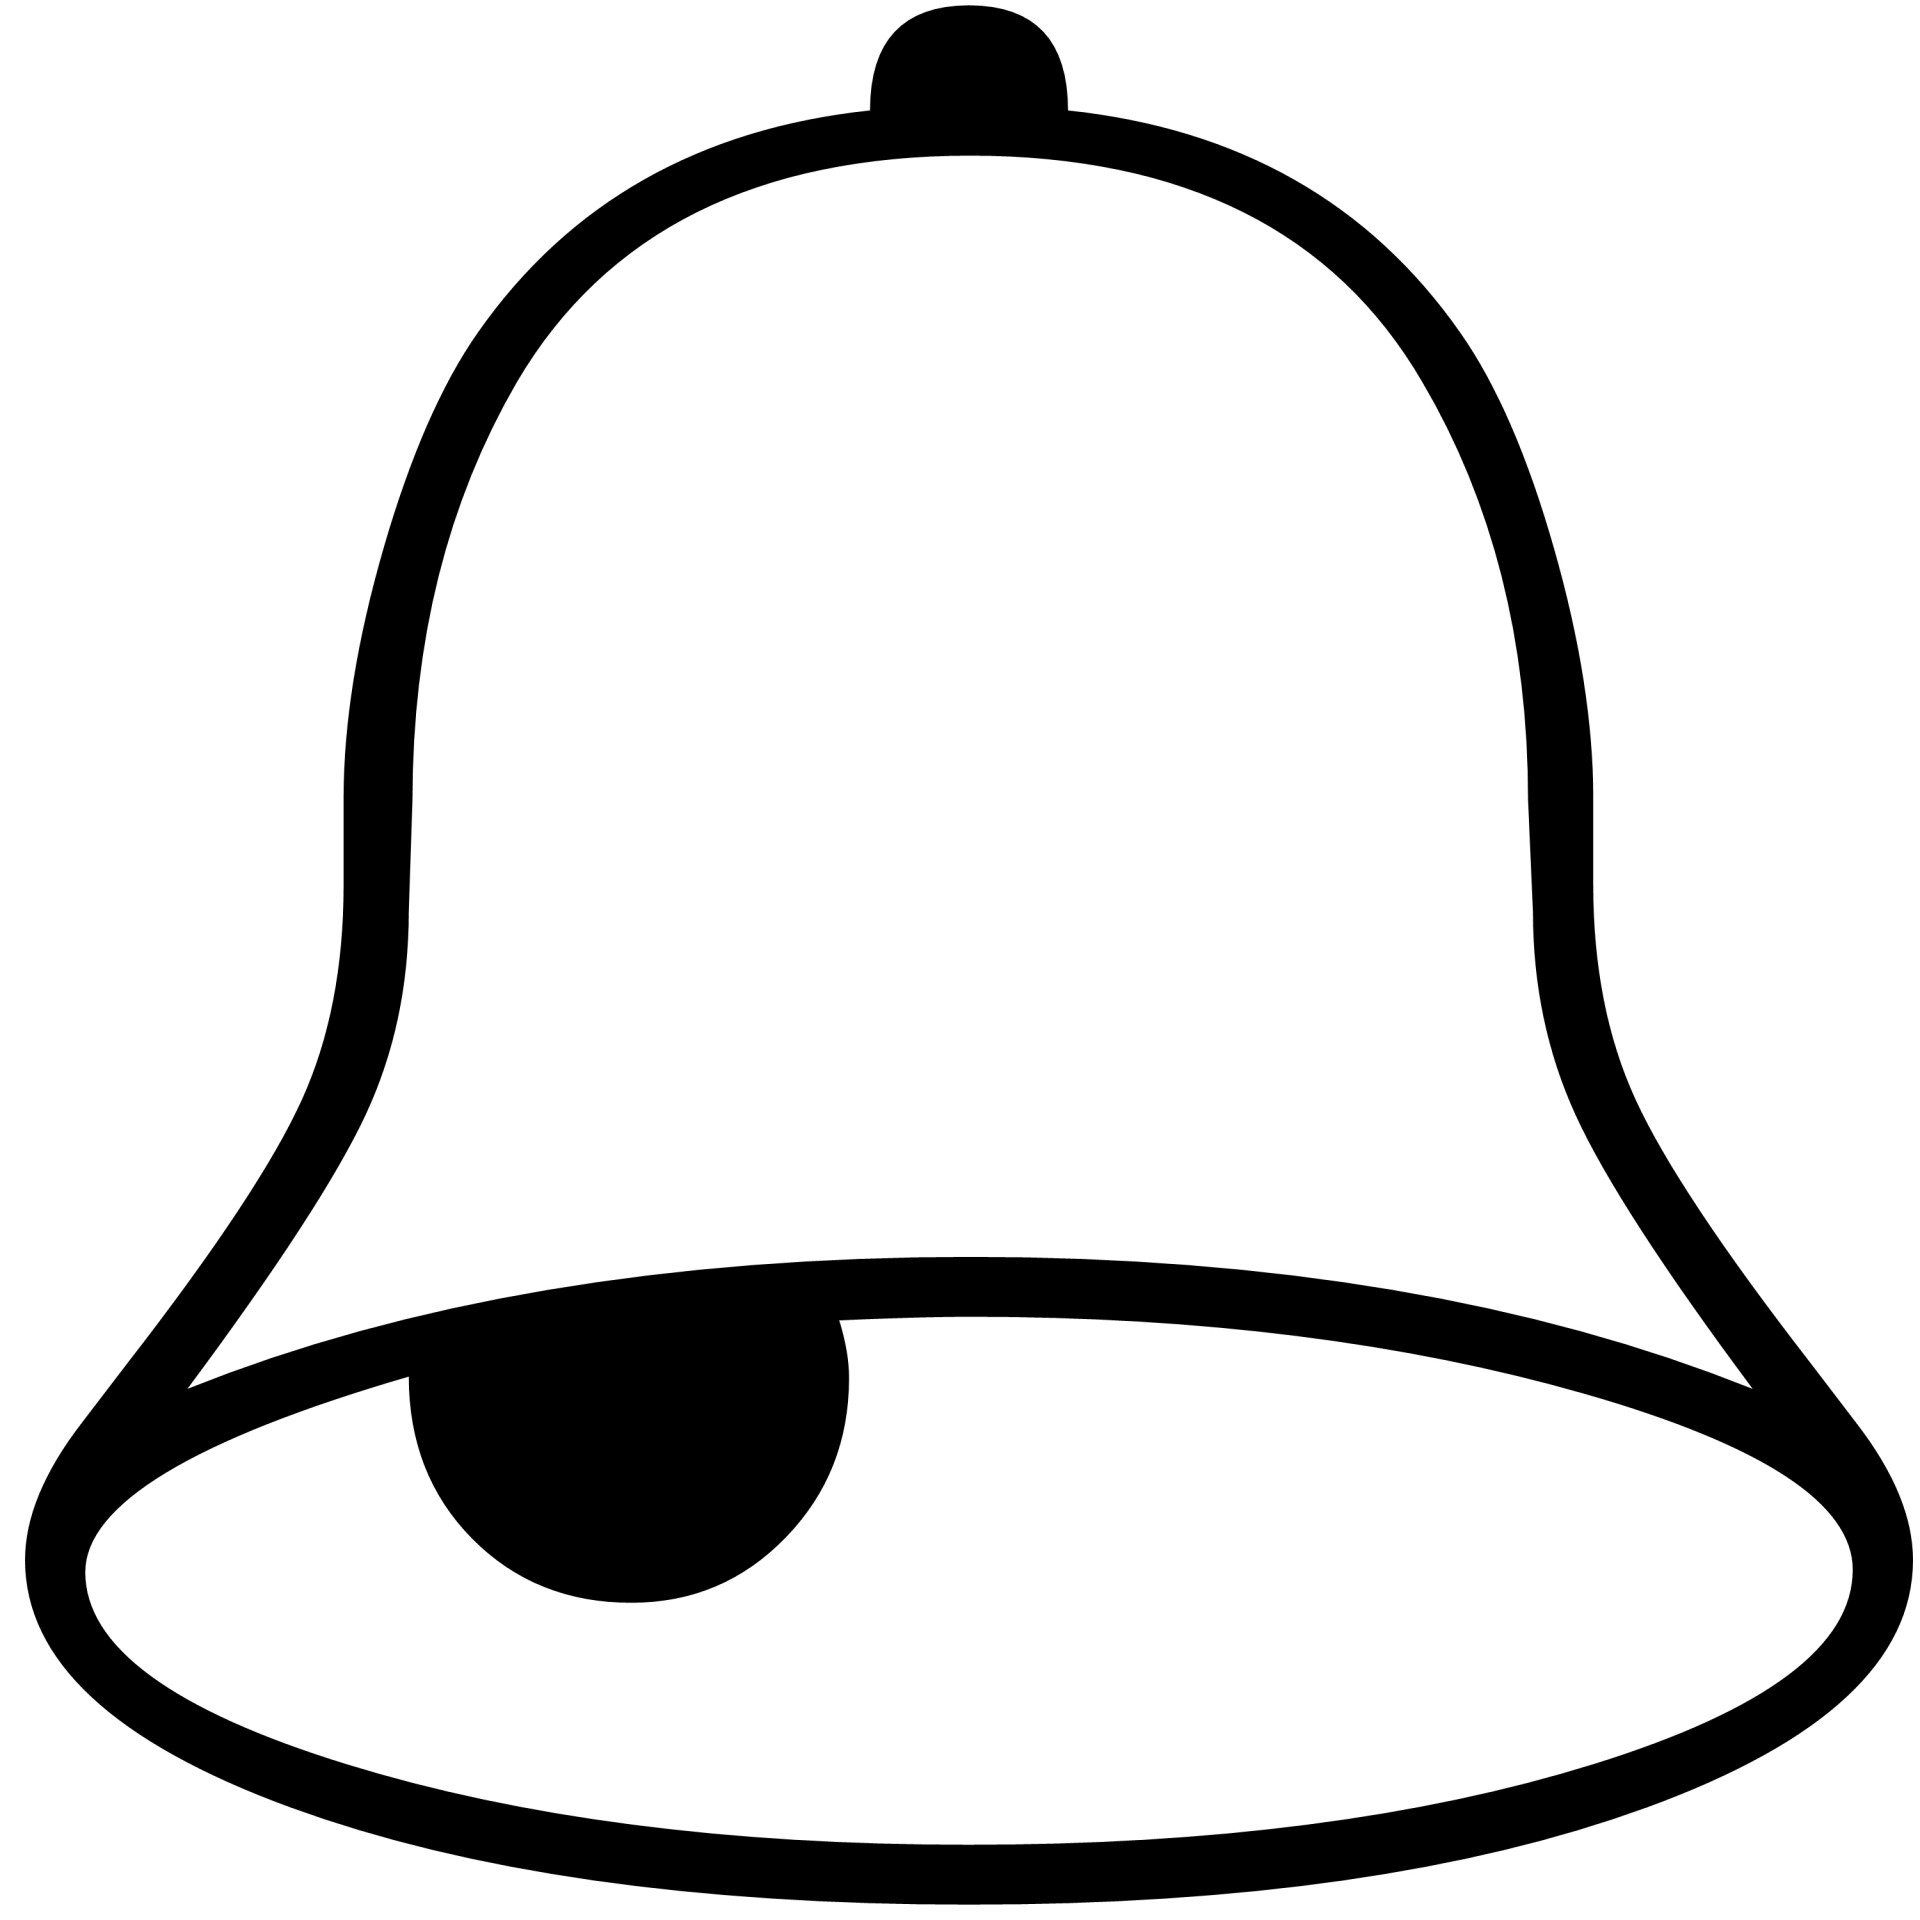 Liberty Bell Silhouette At Getdrawings